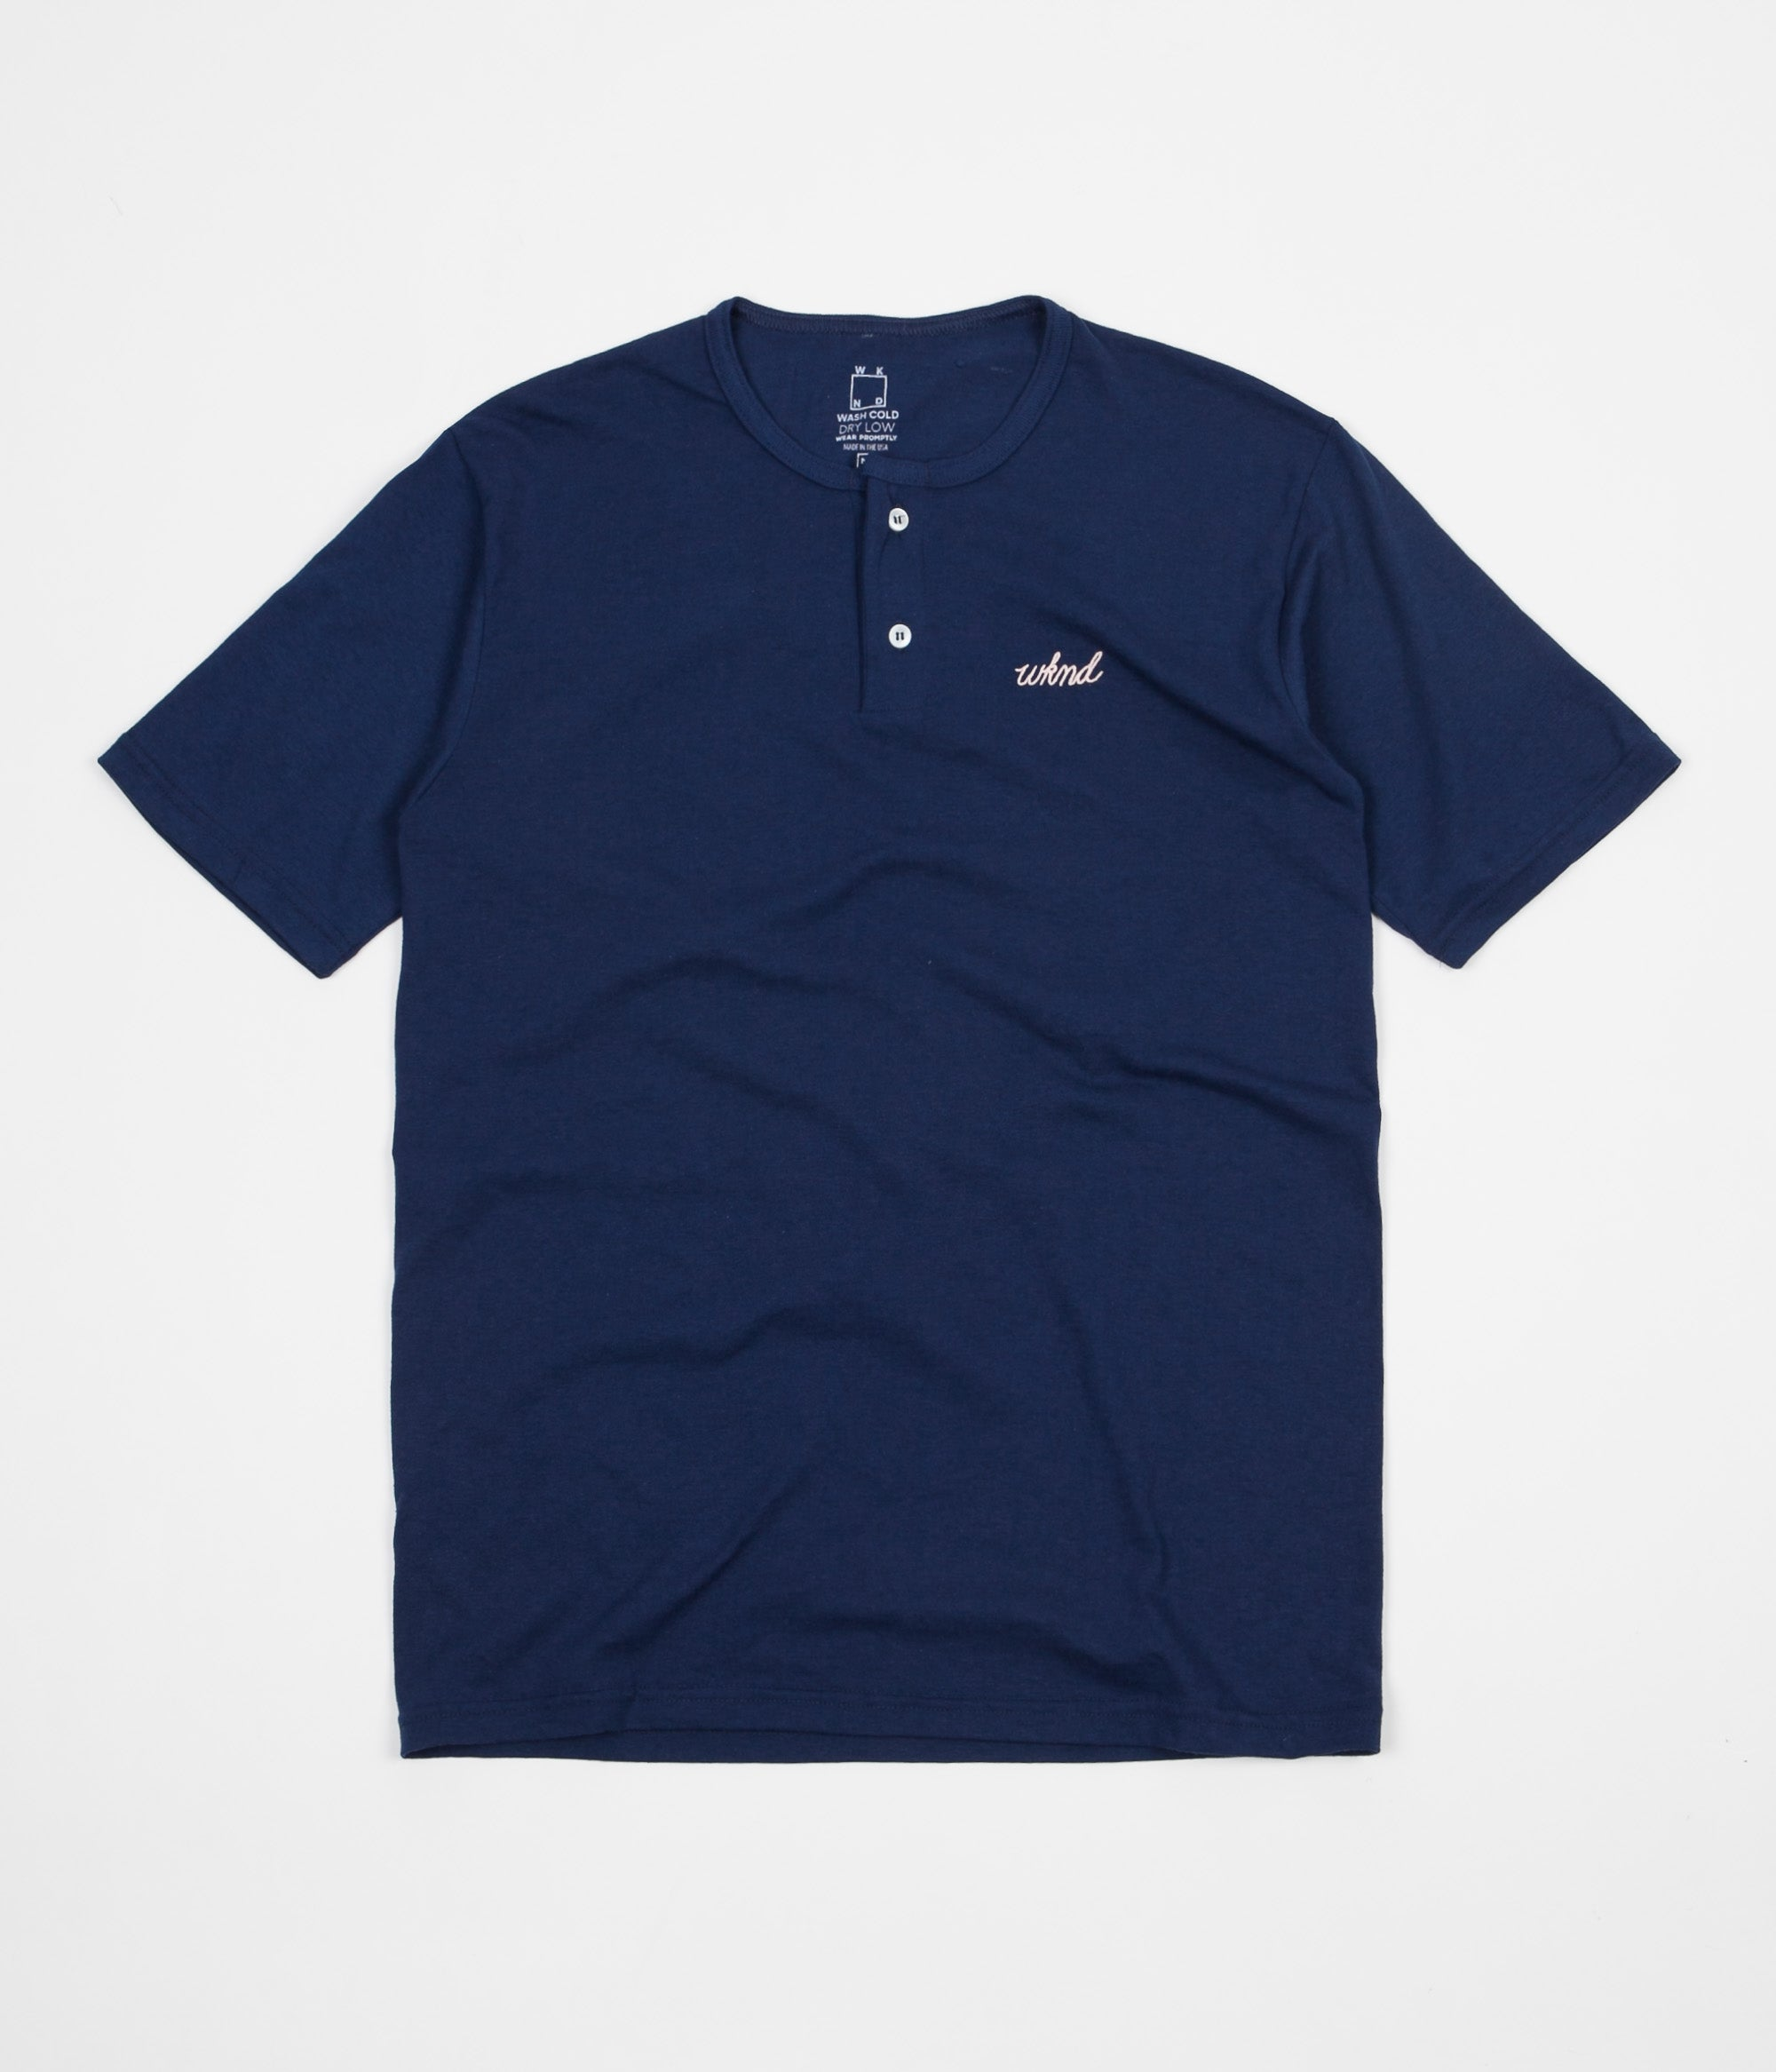 WKND Two Button Henley T-Shirt - Navy